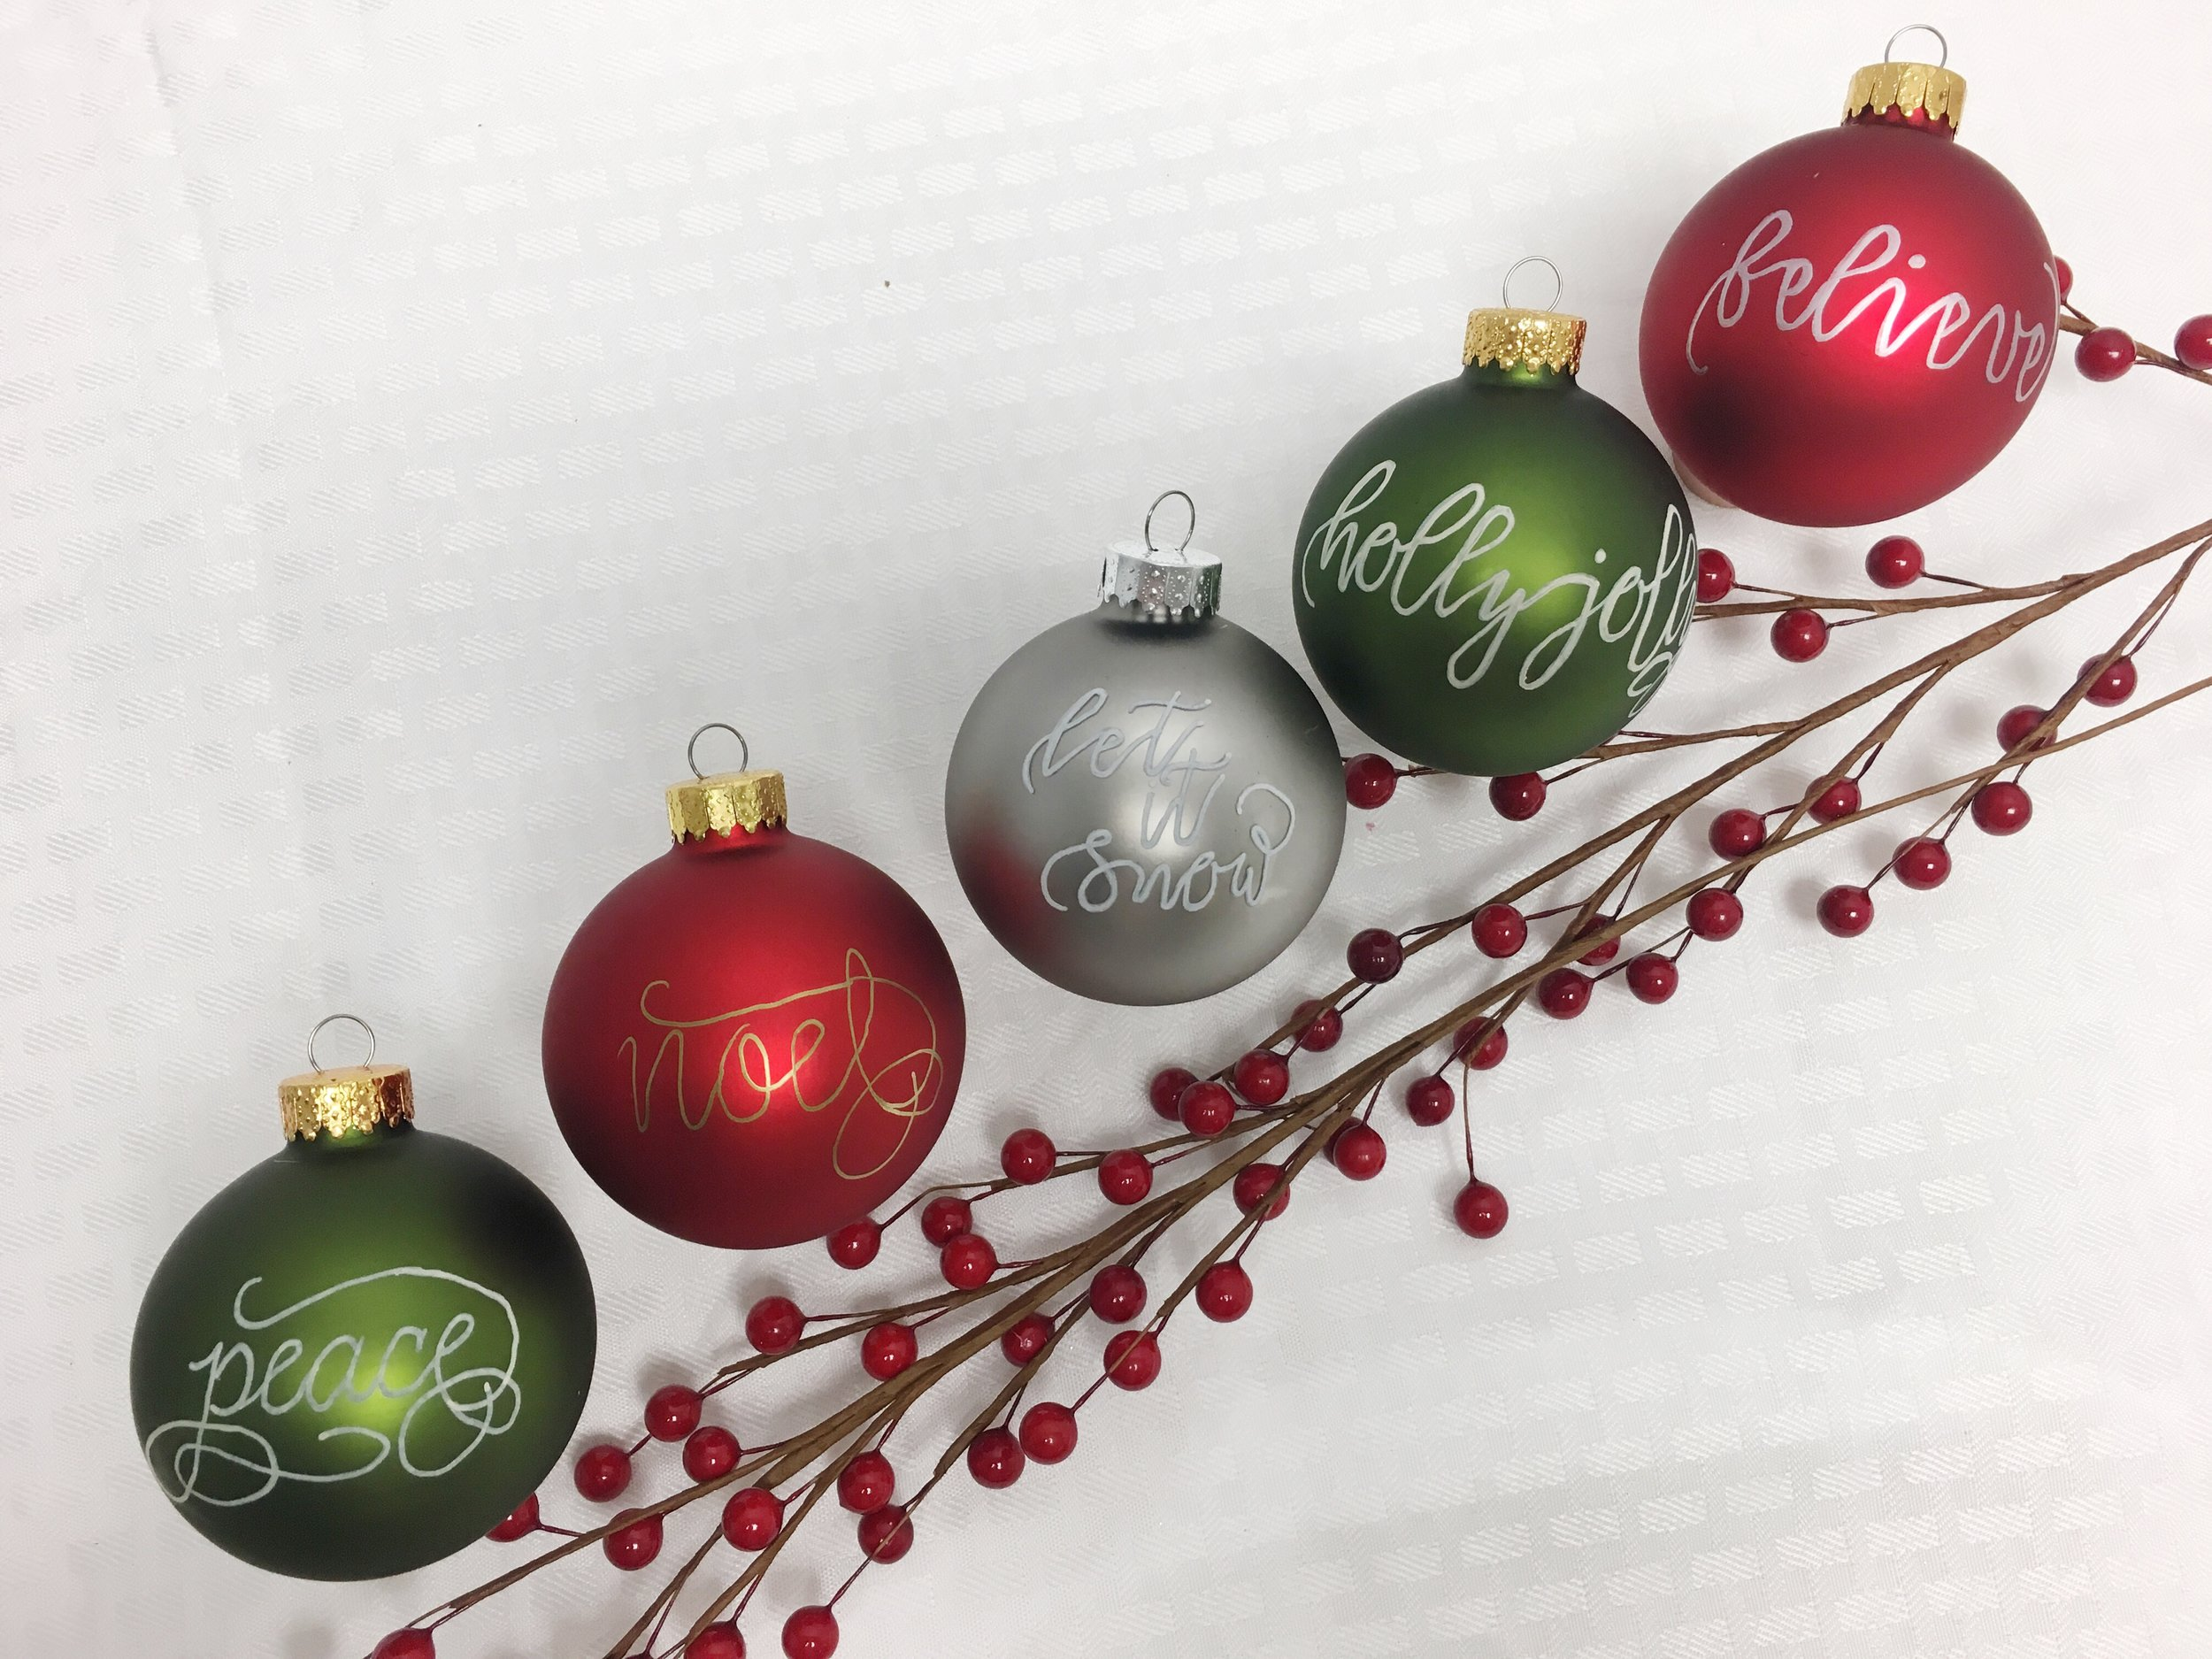 2015 handlettered holiday ornaments 3.jpg